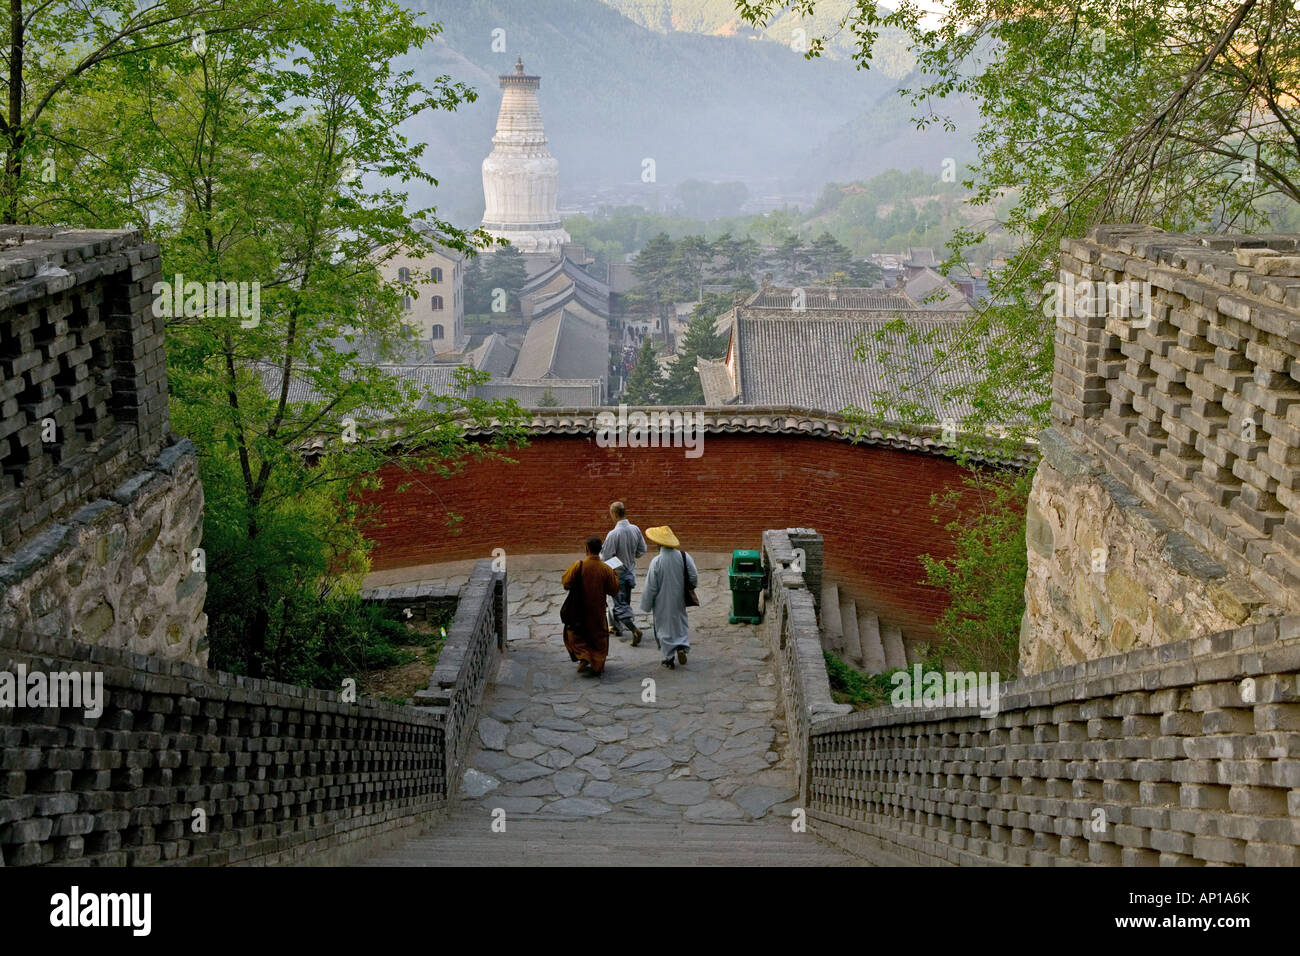 Stairs to Pusa Ding temple, White Pagoda, Xiantong Temple in the background, during birthday celebrations for Wenshu, - Stock Image